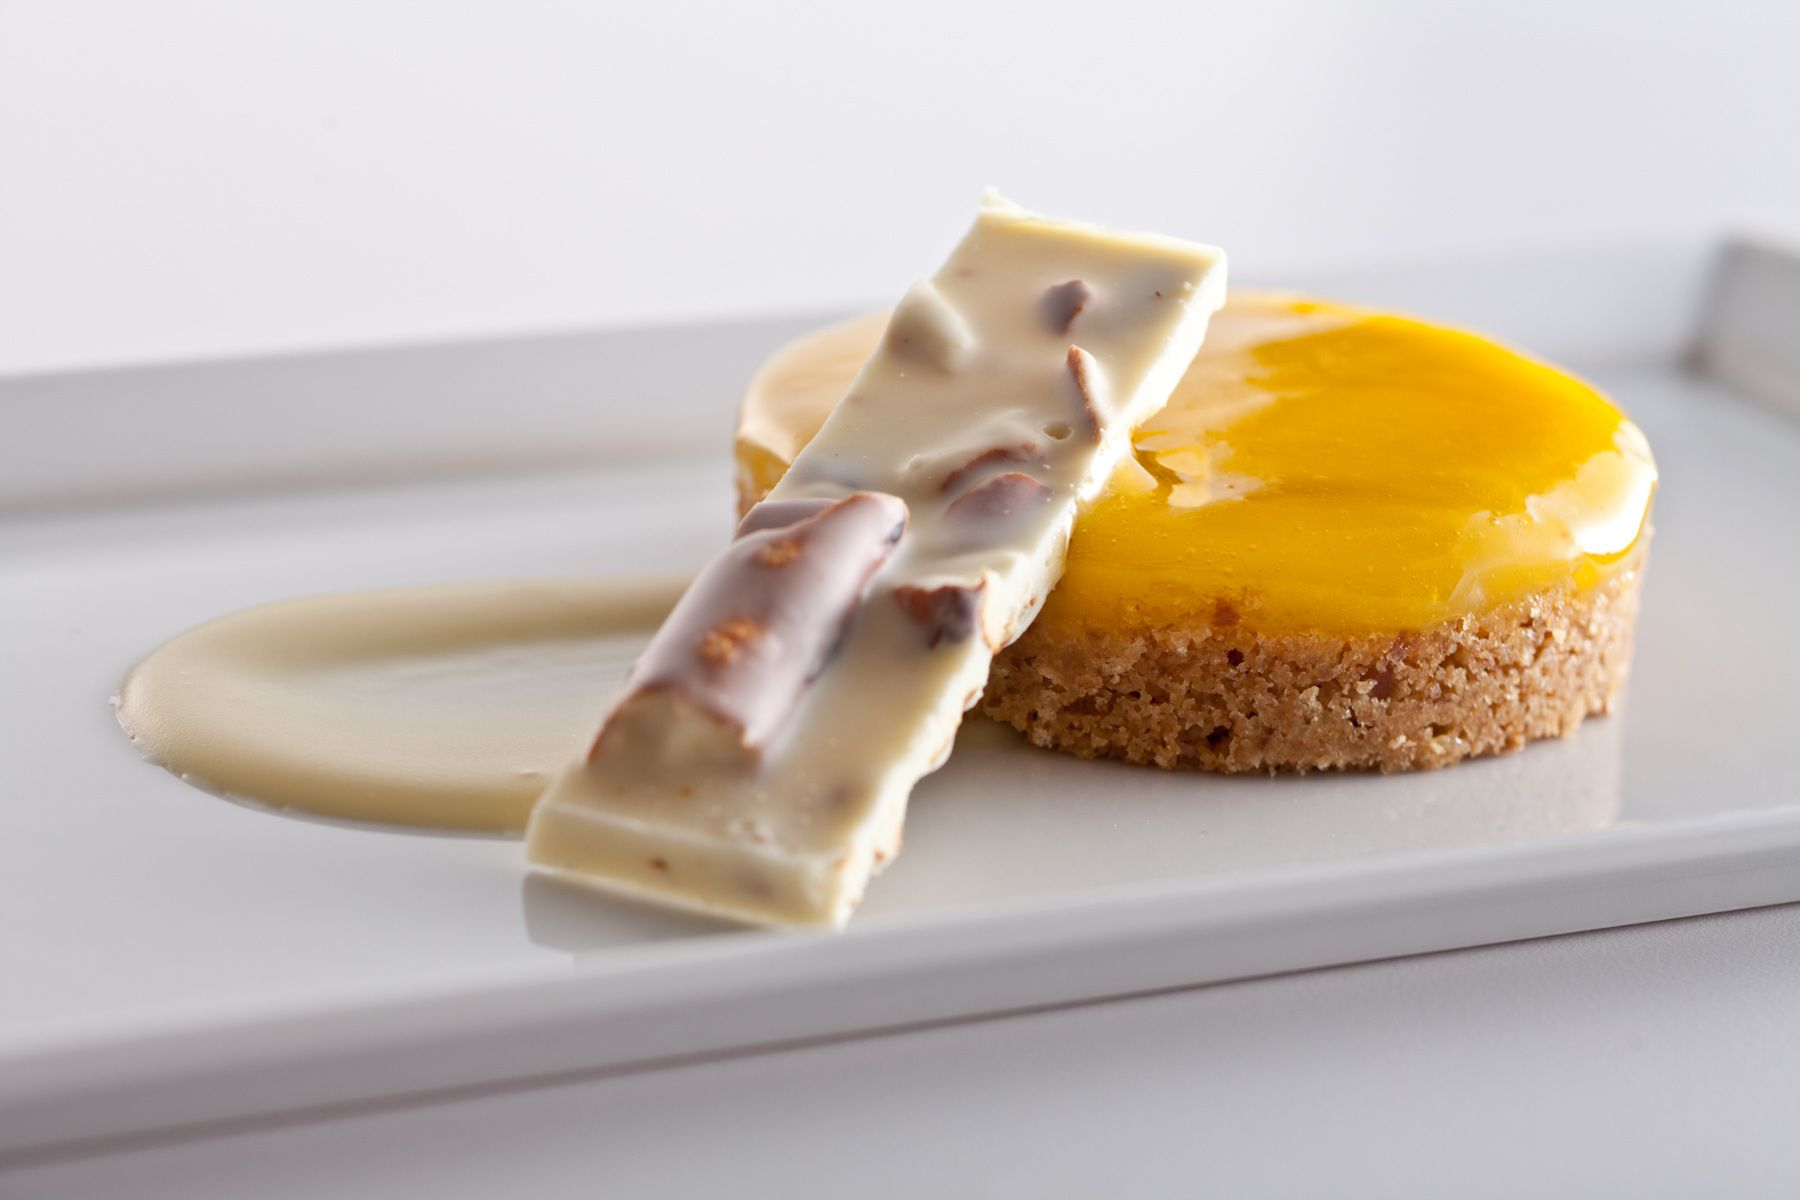 White-Fudge-and-nut-bar-with-lemon-cake-Jessica-Weiss-Union-League-of-Chicago.jpg